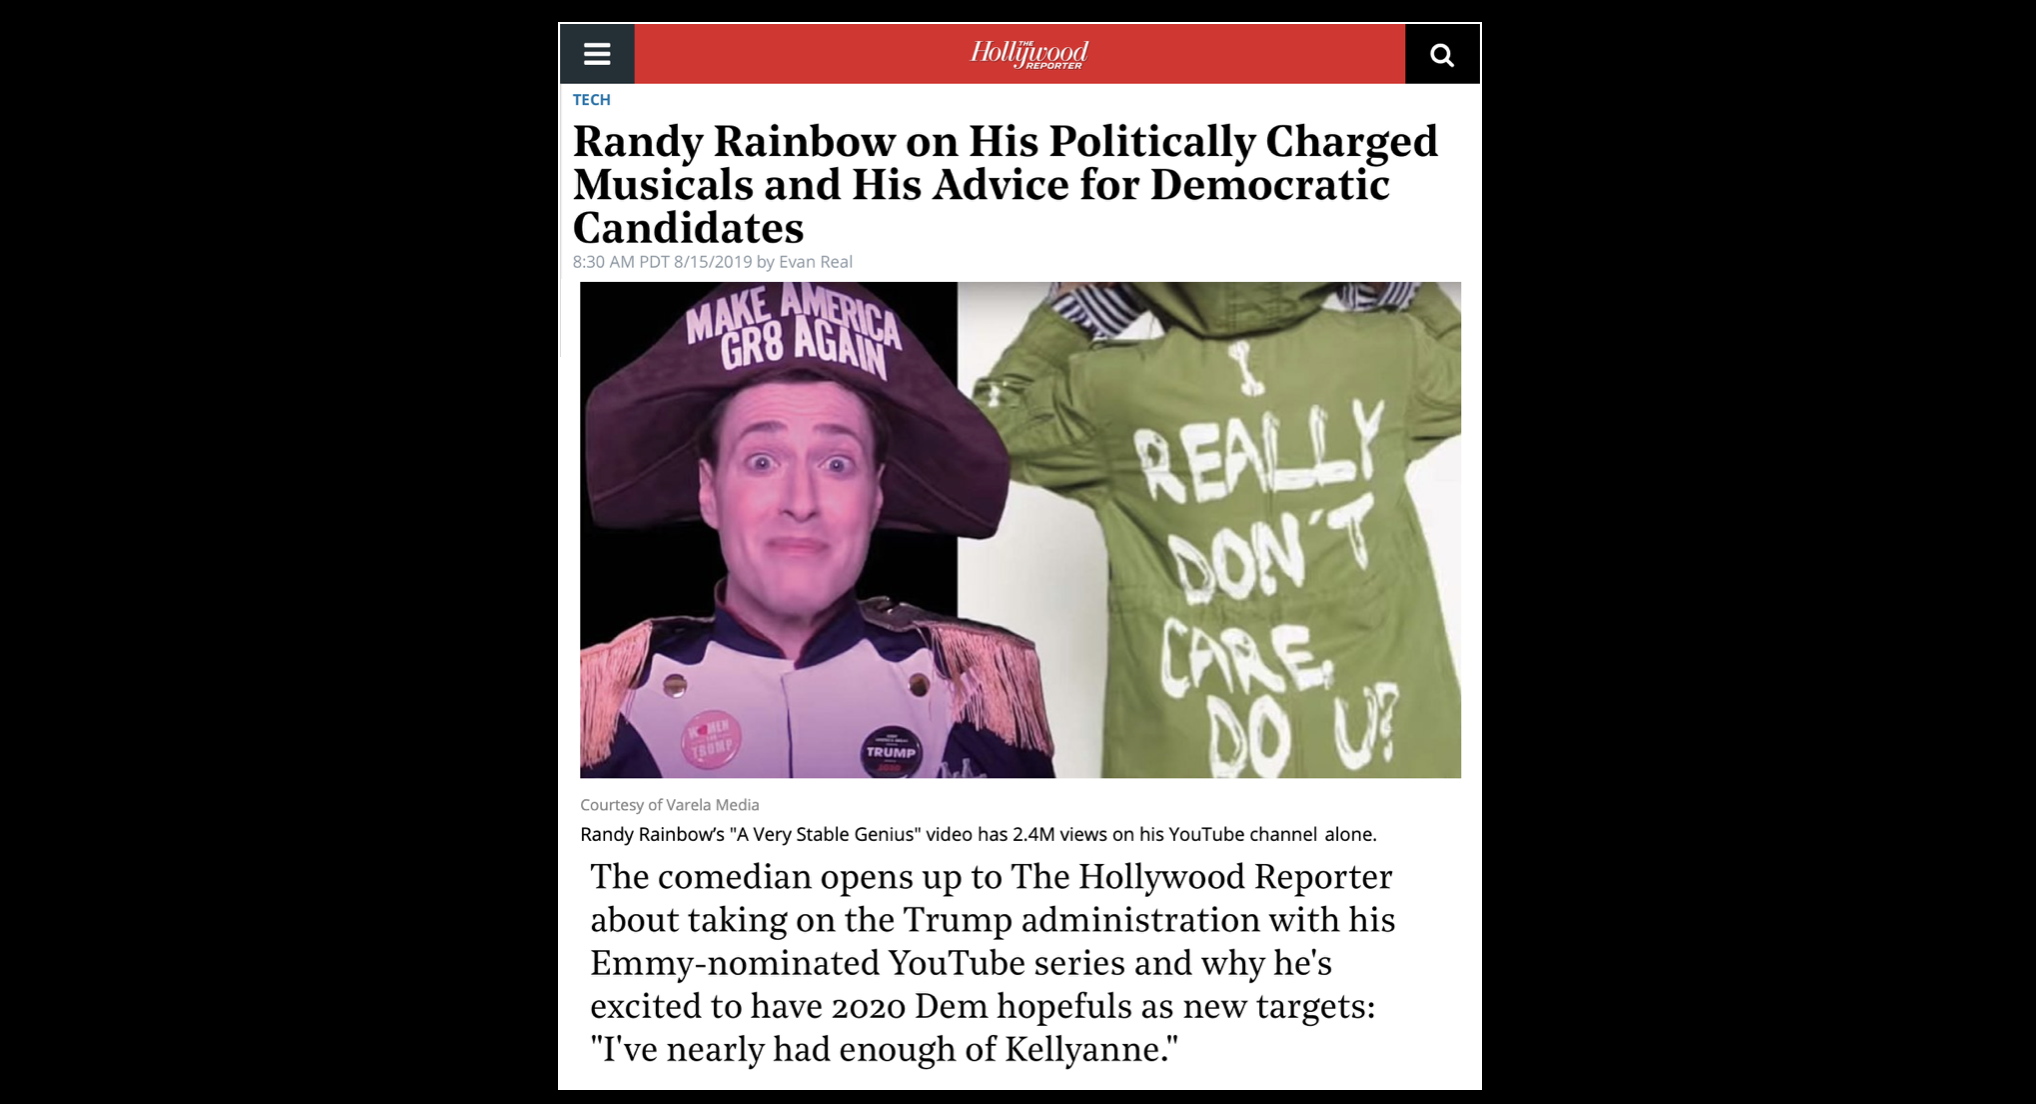 The Hollywood Reporter_2019 08 15.png